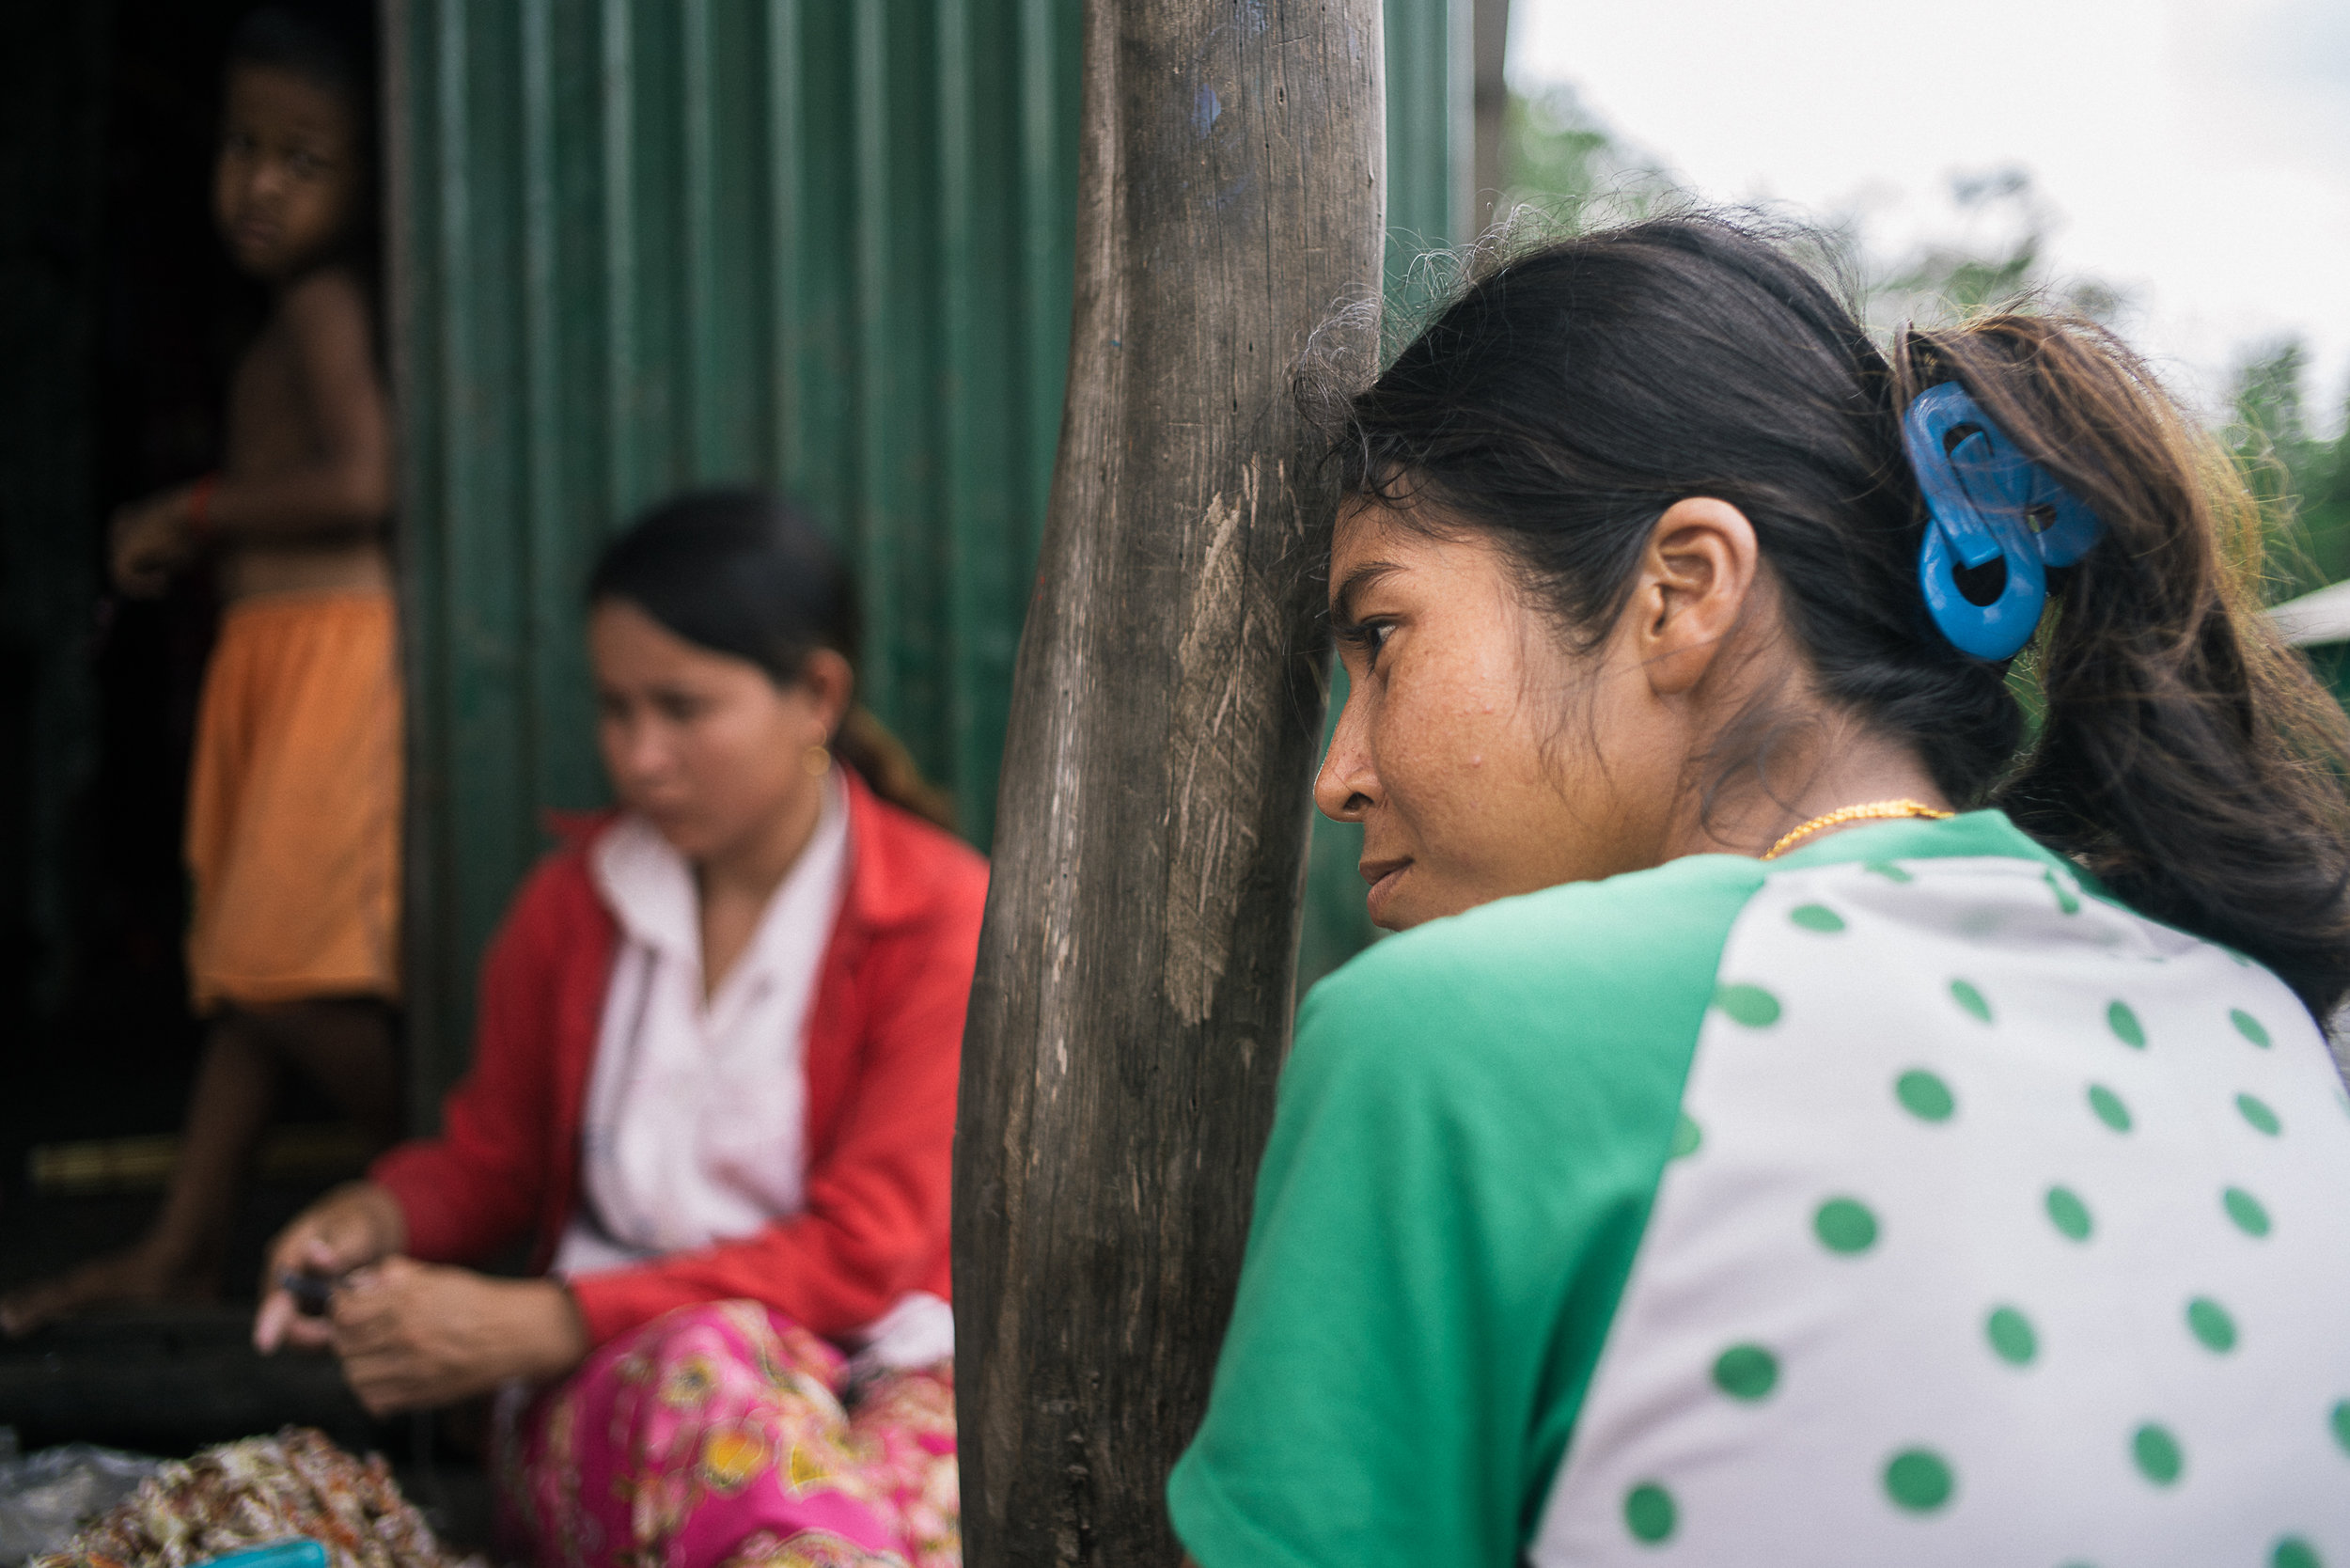 Chao Sok Teara, 26, have spent the past five years working on different plantations in Trad, Thailand. Coming back home is expensive due to the cost of legal paperwork each time she crosses back to Cambodia. The working conditions on these fields, she said, are harsh but earning money in her home village was much tougher.